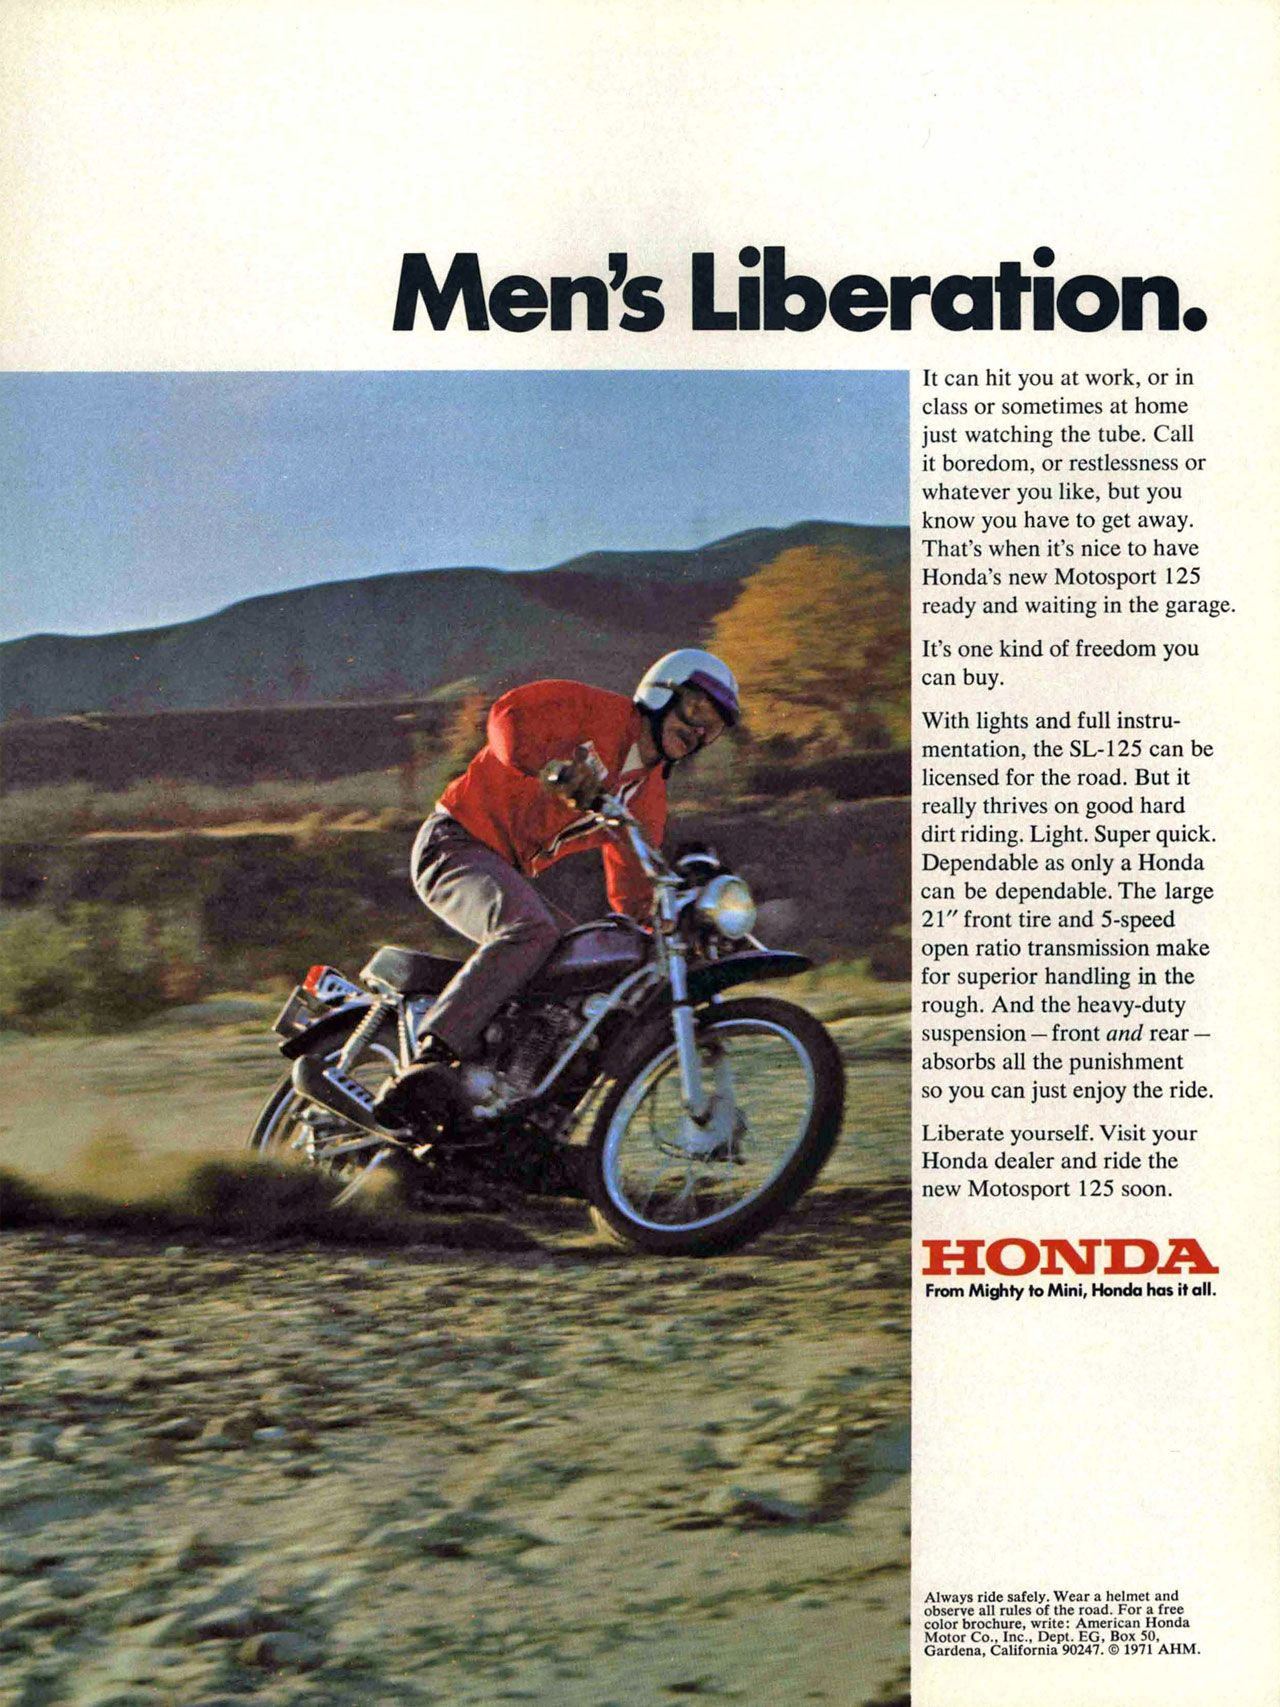 Men's Liberation. It can hit you at work, or in class or sometimes at home just watching the tube. Call it boredom, or restlessness or whatever you like, but you know you have to get away. That's when it's nice to have Honda's new Motosport 125 ready and waiting in the garage. It's one kind of freedom you can buy. With lights and full instru-mentation, the SL-125 can be licensed for the road. But it really thrives on good hard dirt riding. Light. Super quick. Dependable as only a Honda can be dependable. The large 21